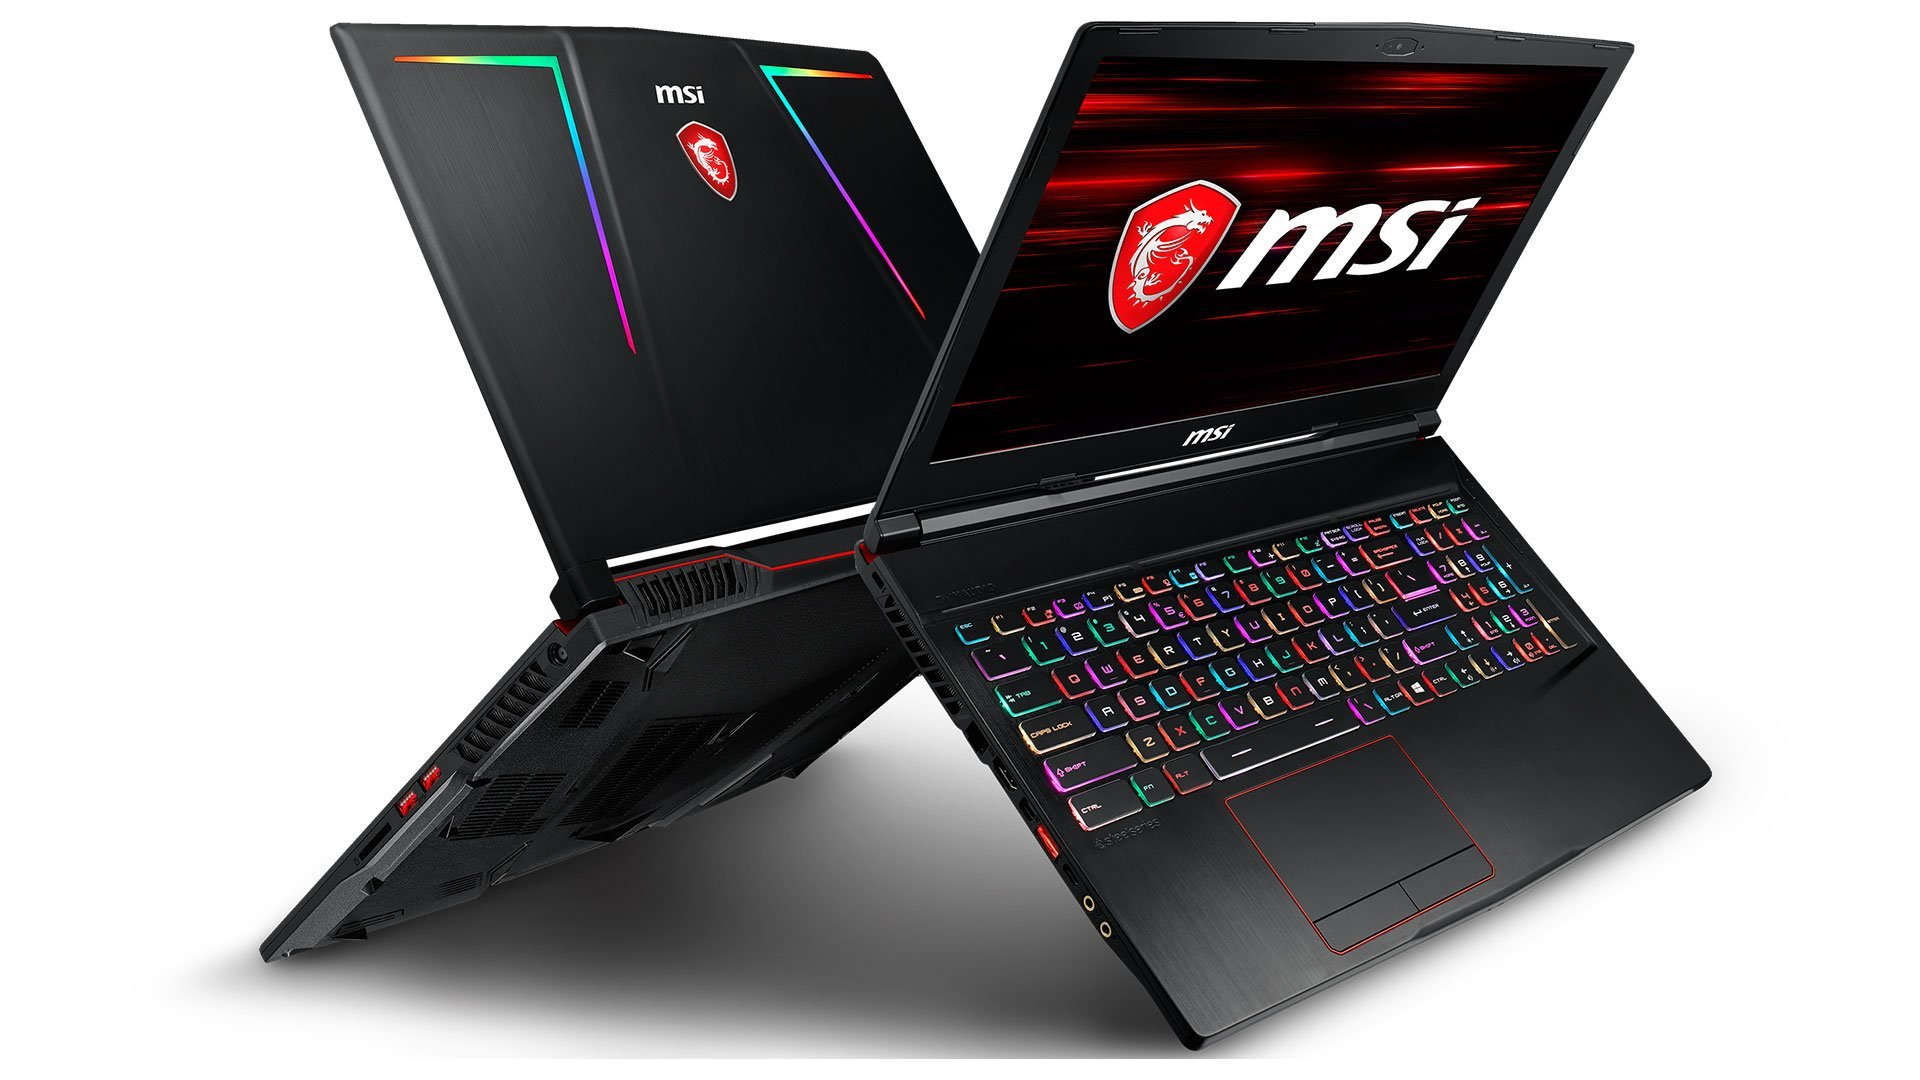 New Gaming Laptops from MSI with Intel 8th Generation Processors 5